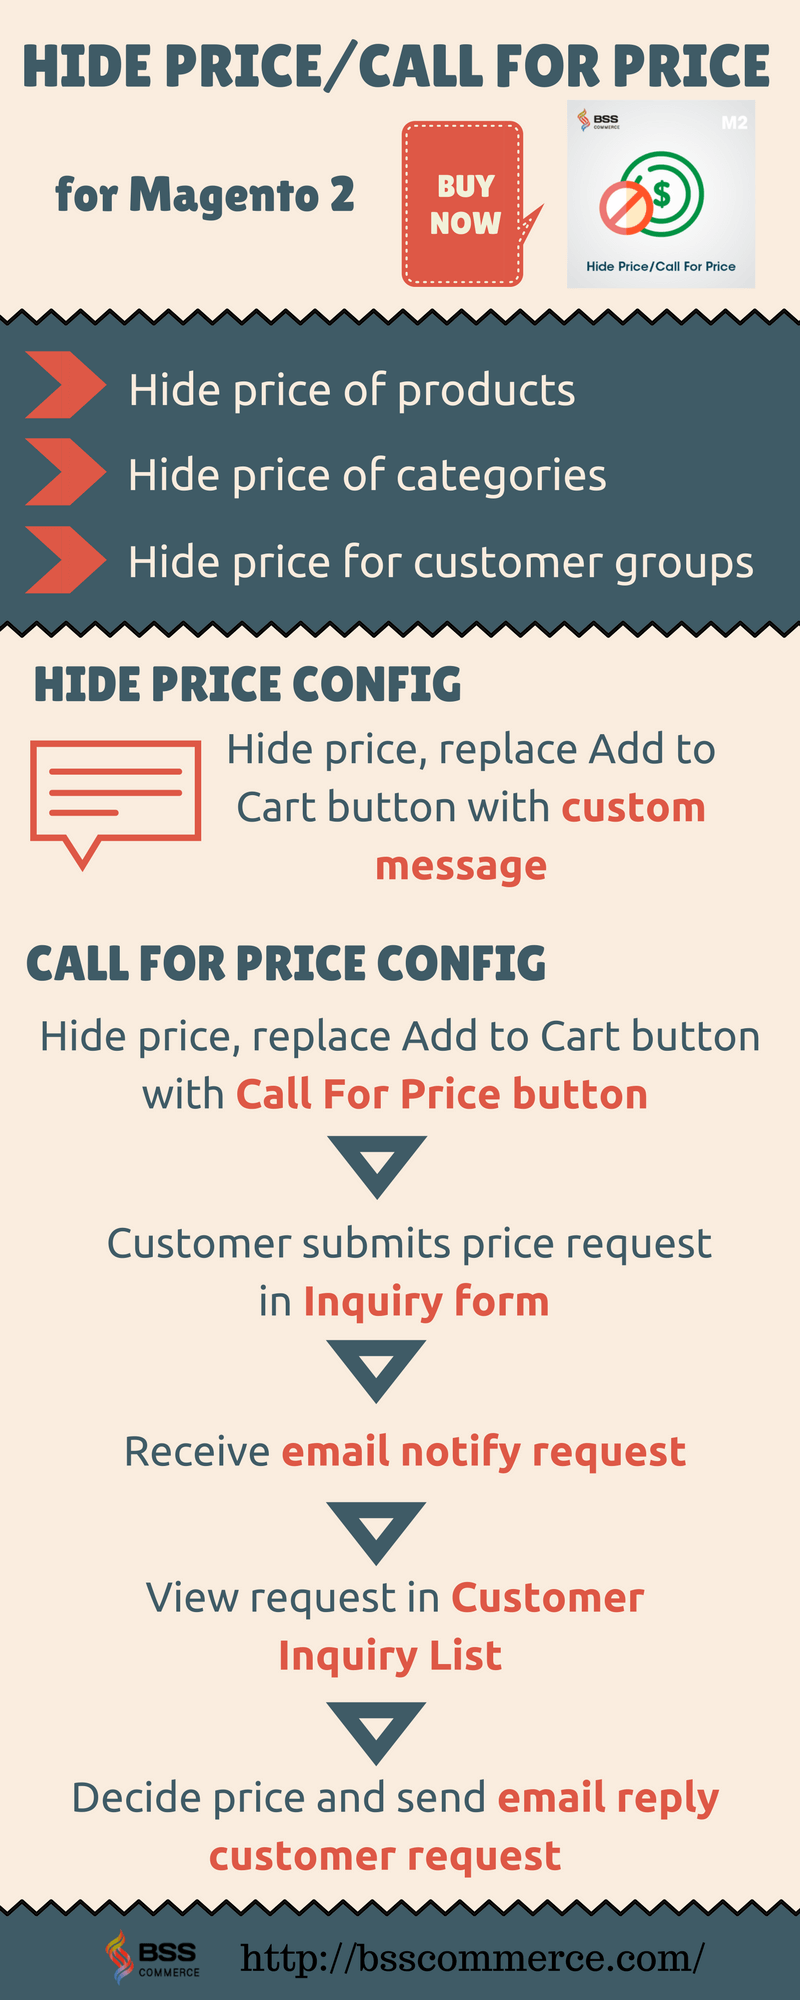 Hide Price/Call For Price for Magento 2 Extension Infographic